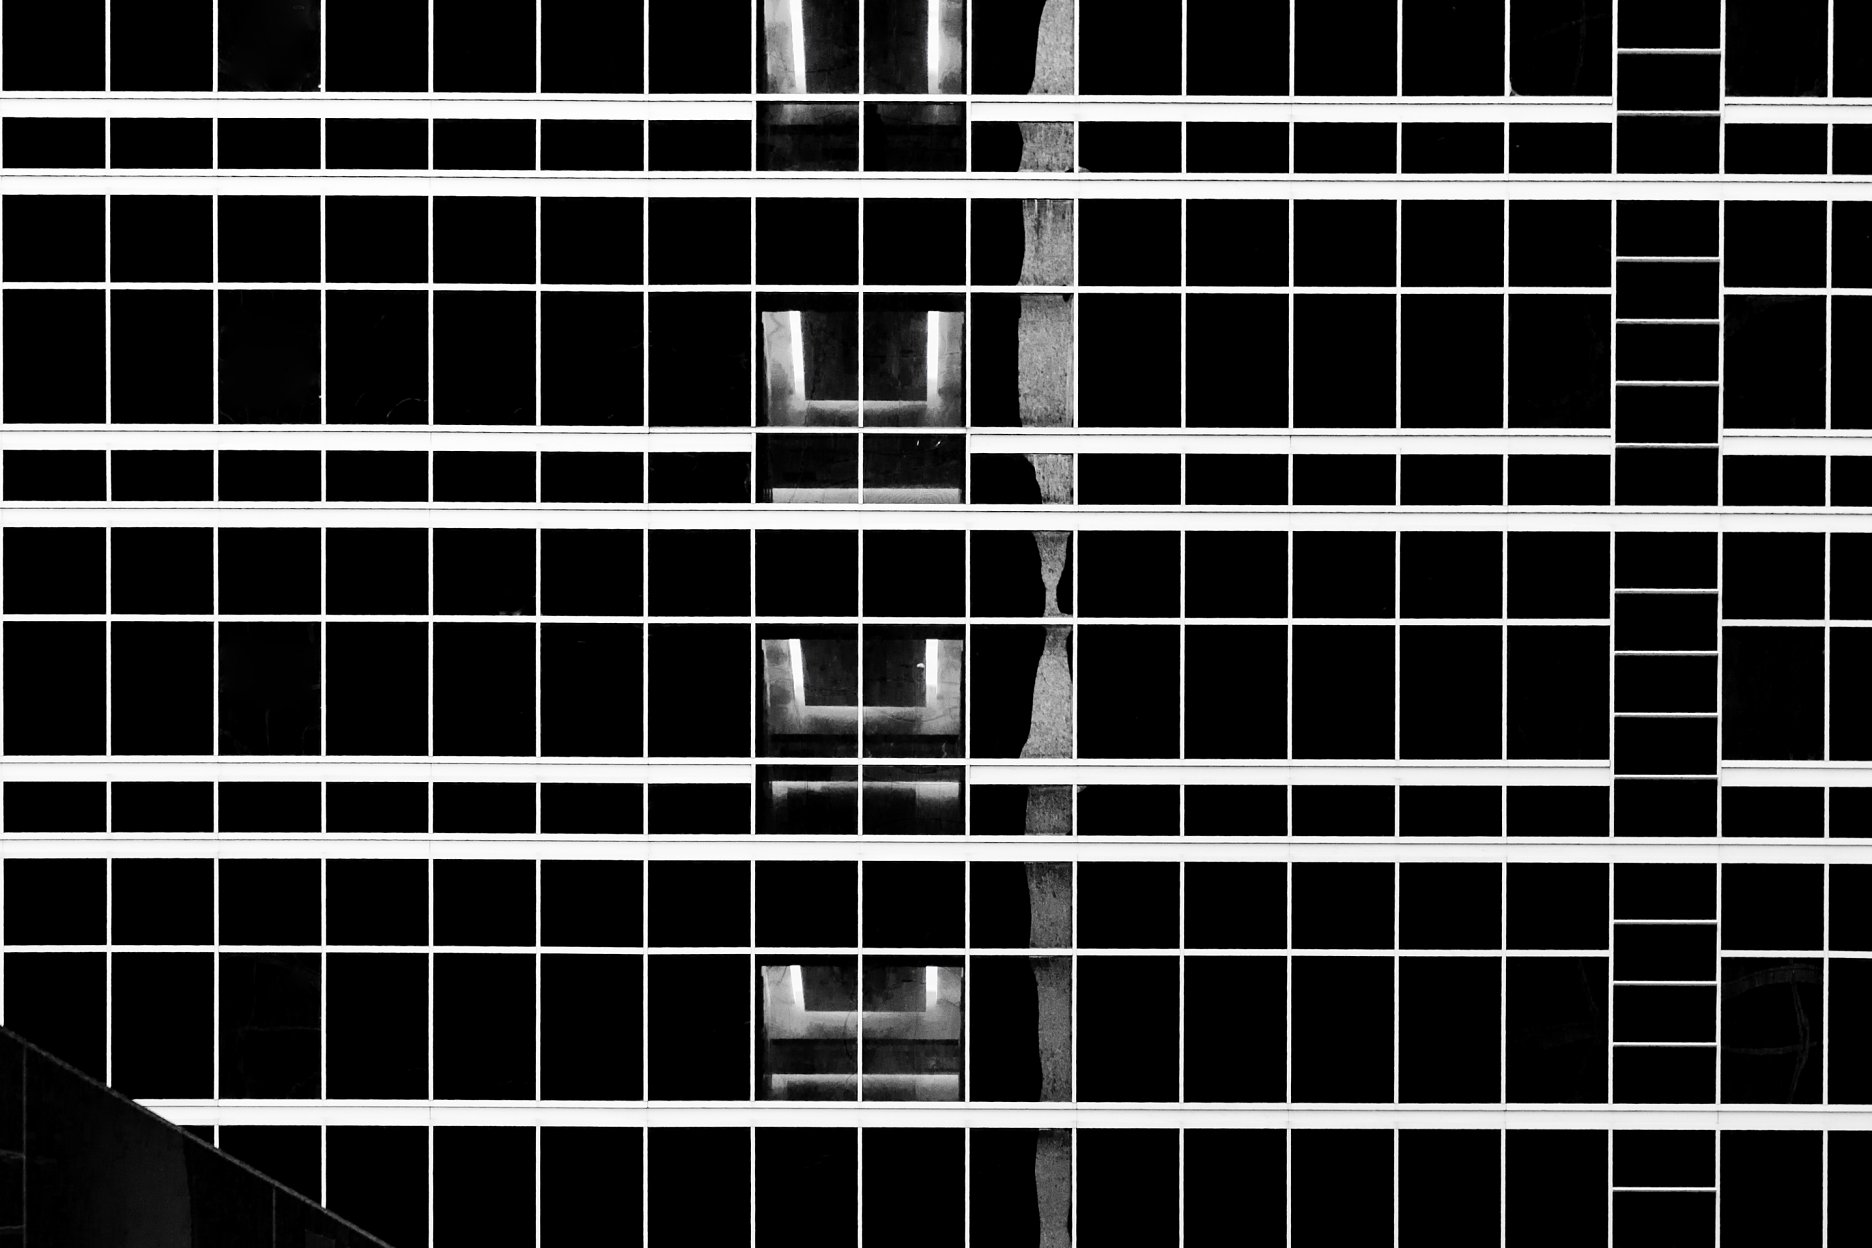 The Grid, City of Capitals, Moscow, 2017